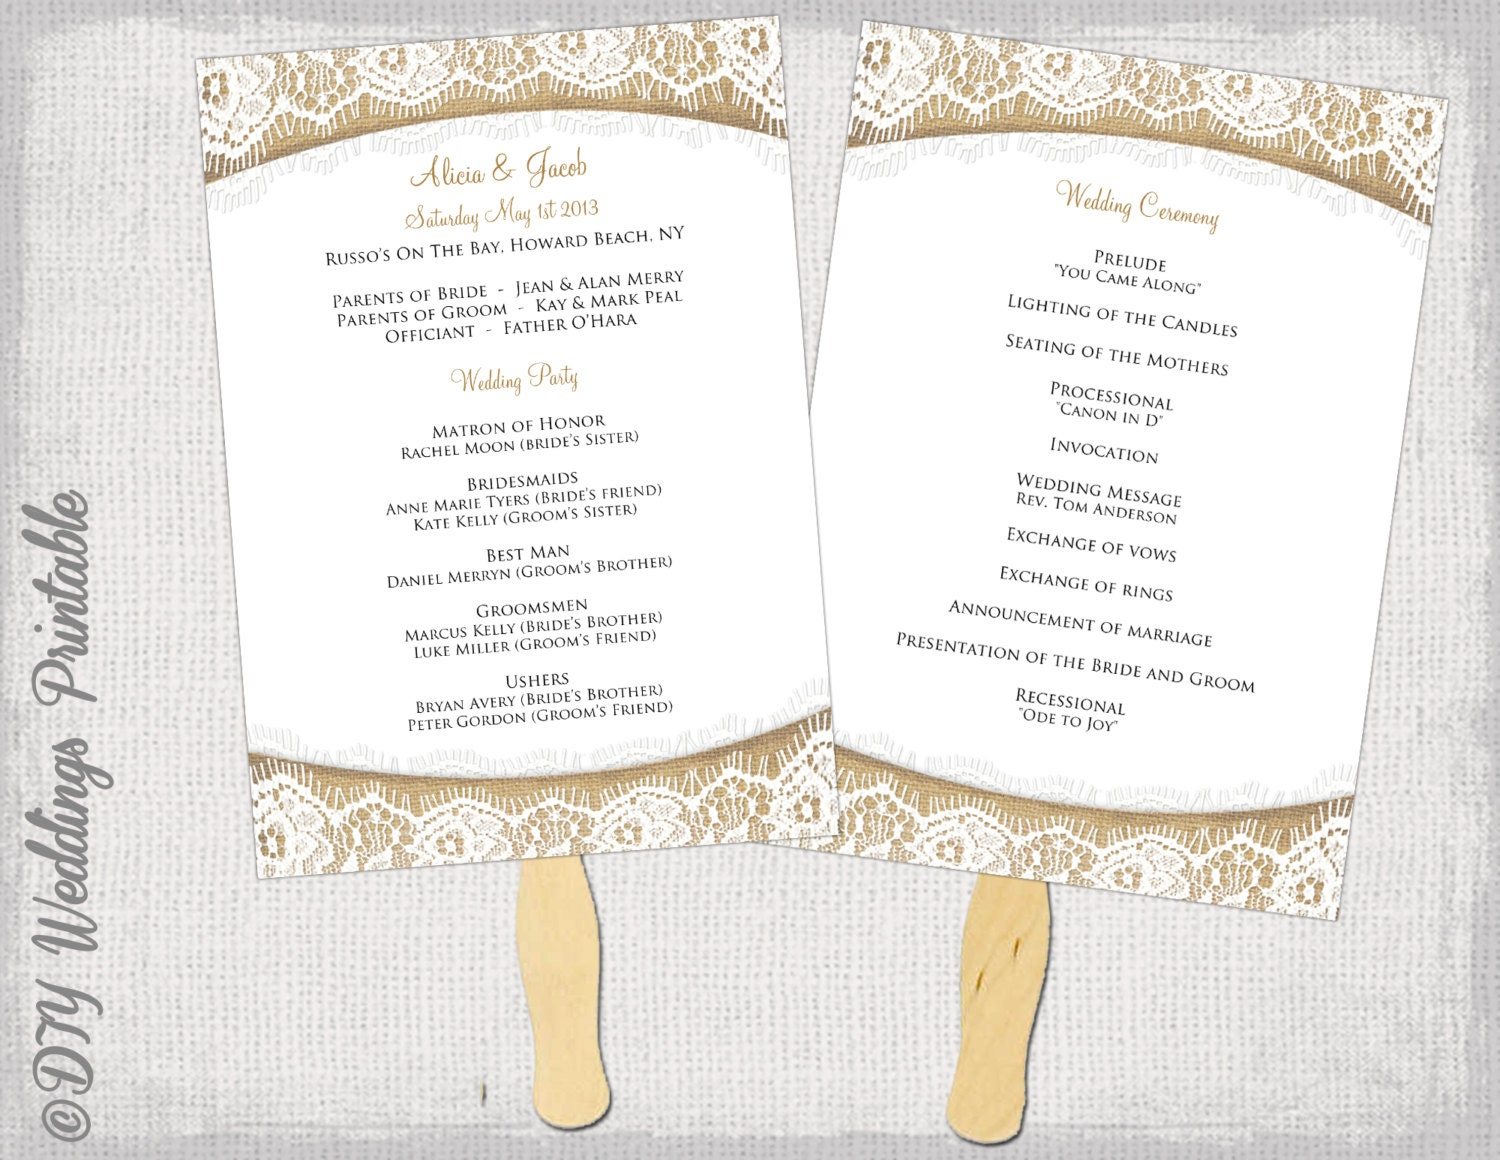 wedding program fan template rustic burlap lace With wedding programs fans templates